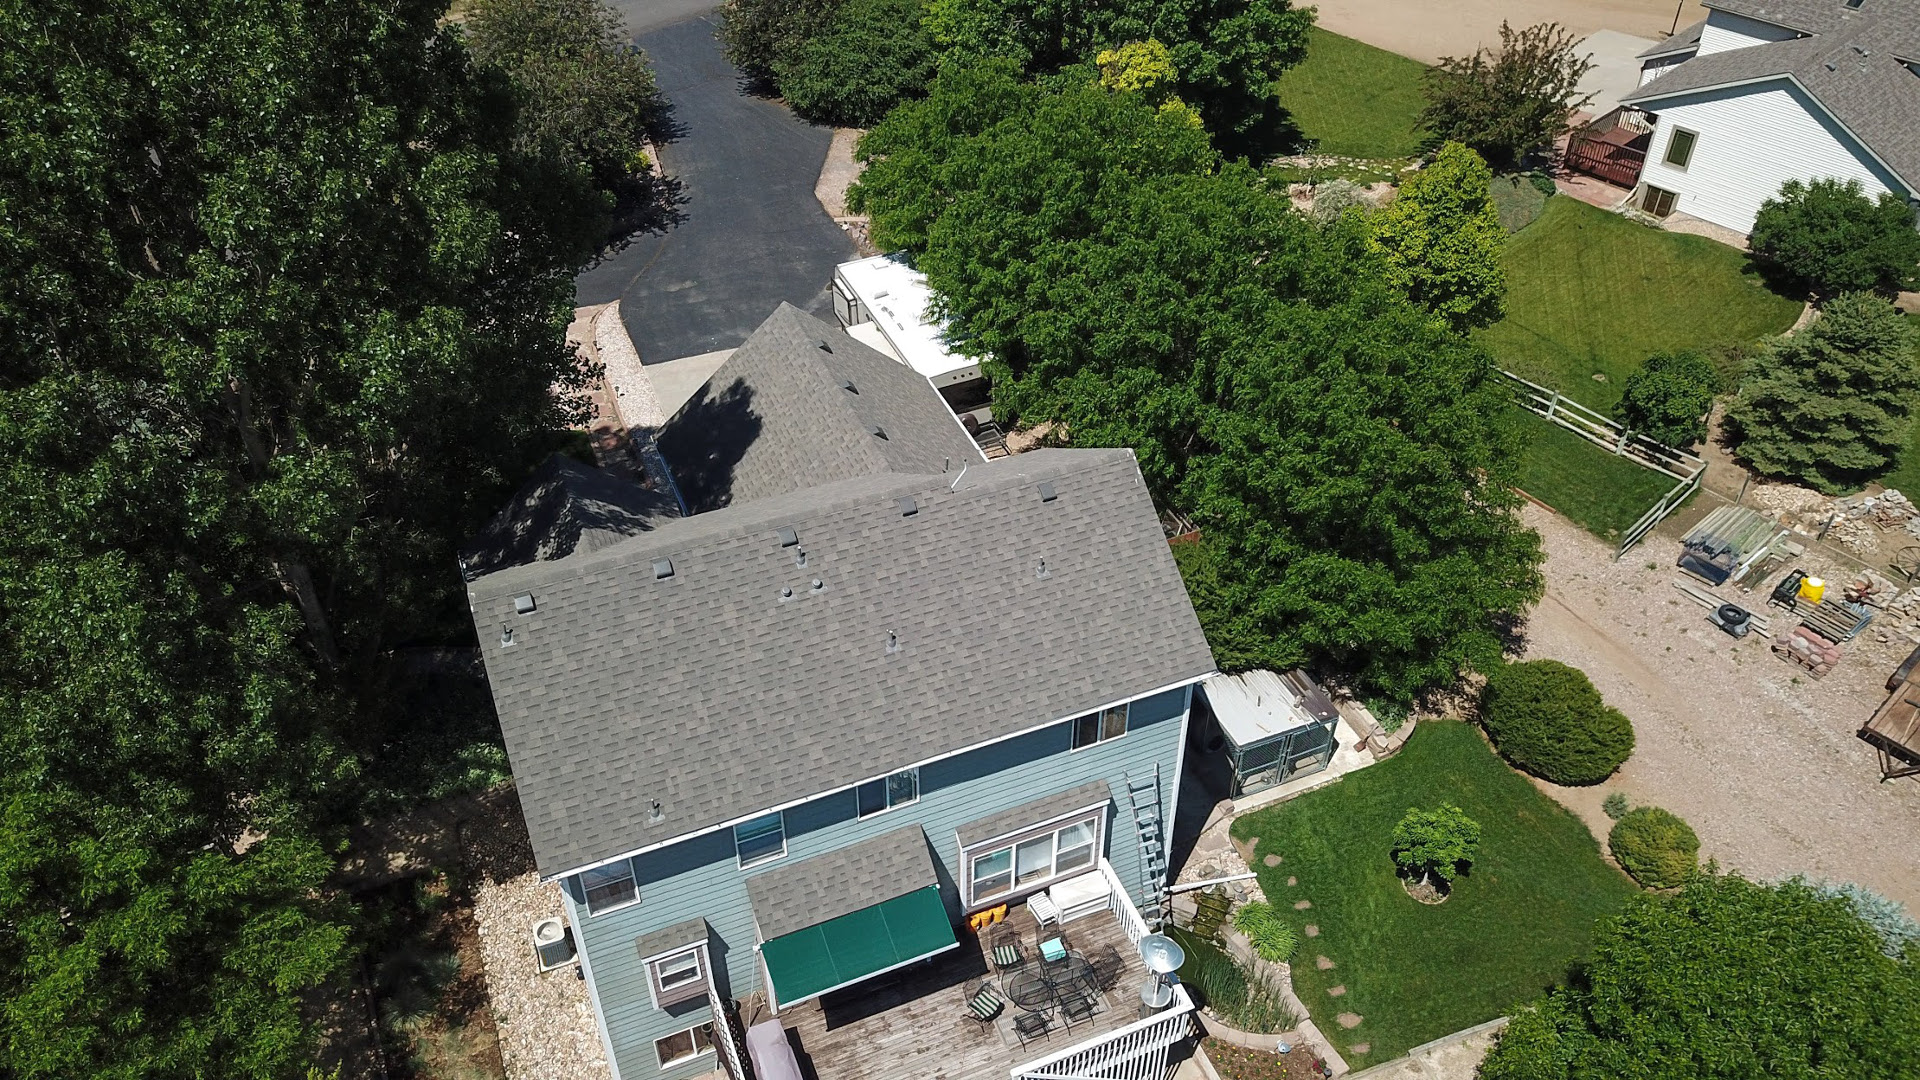 Installed a Residential Reroof with weather wood Class IV shingles, prefinished white gutters.